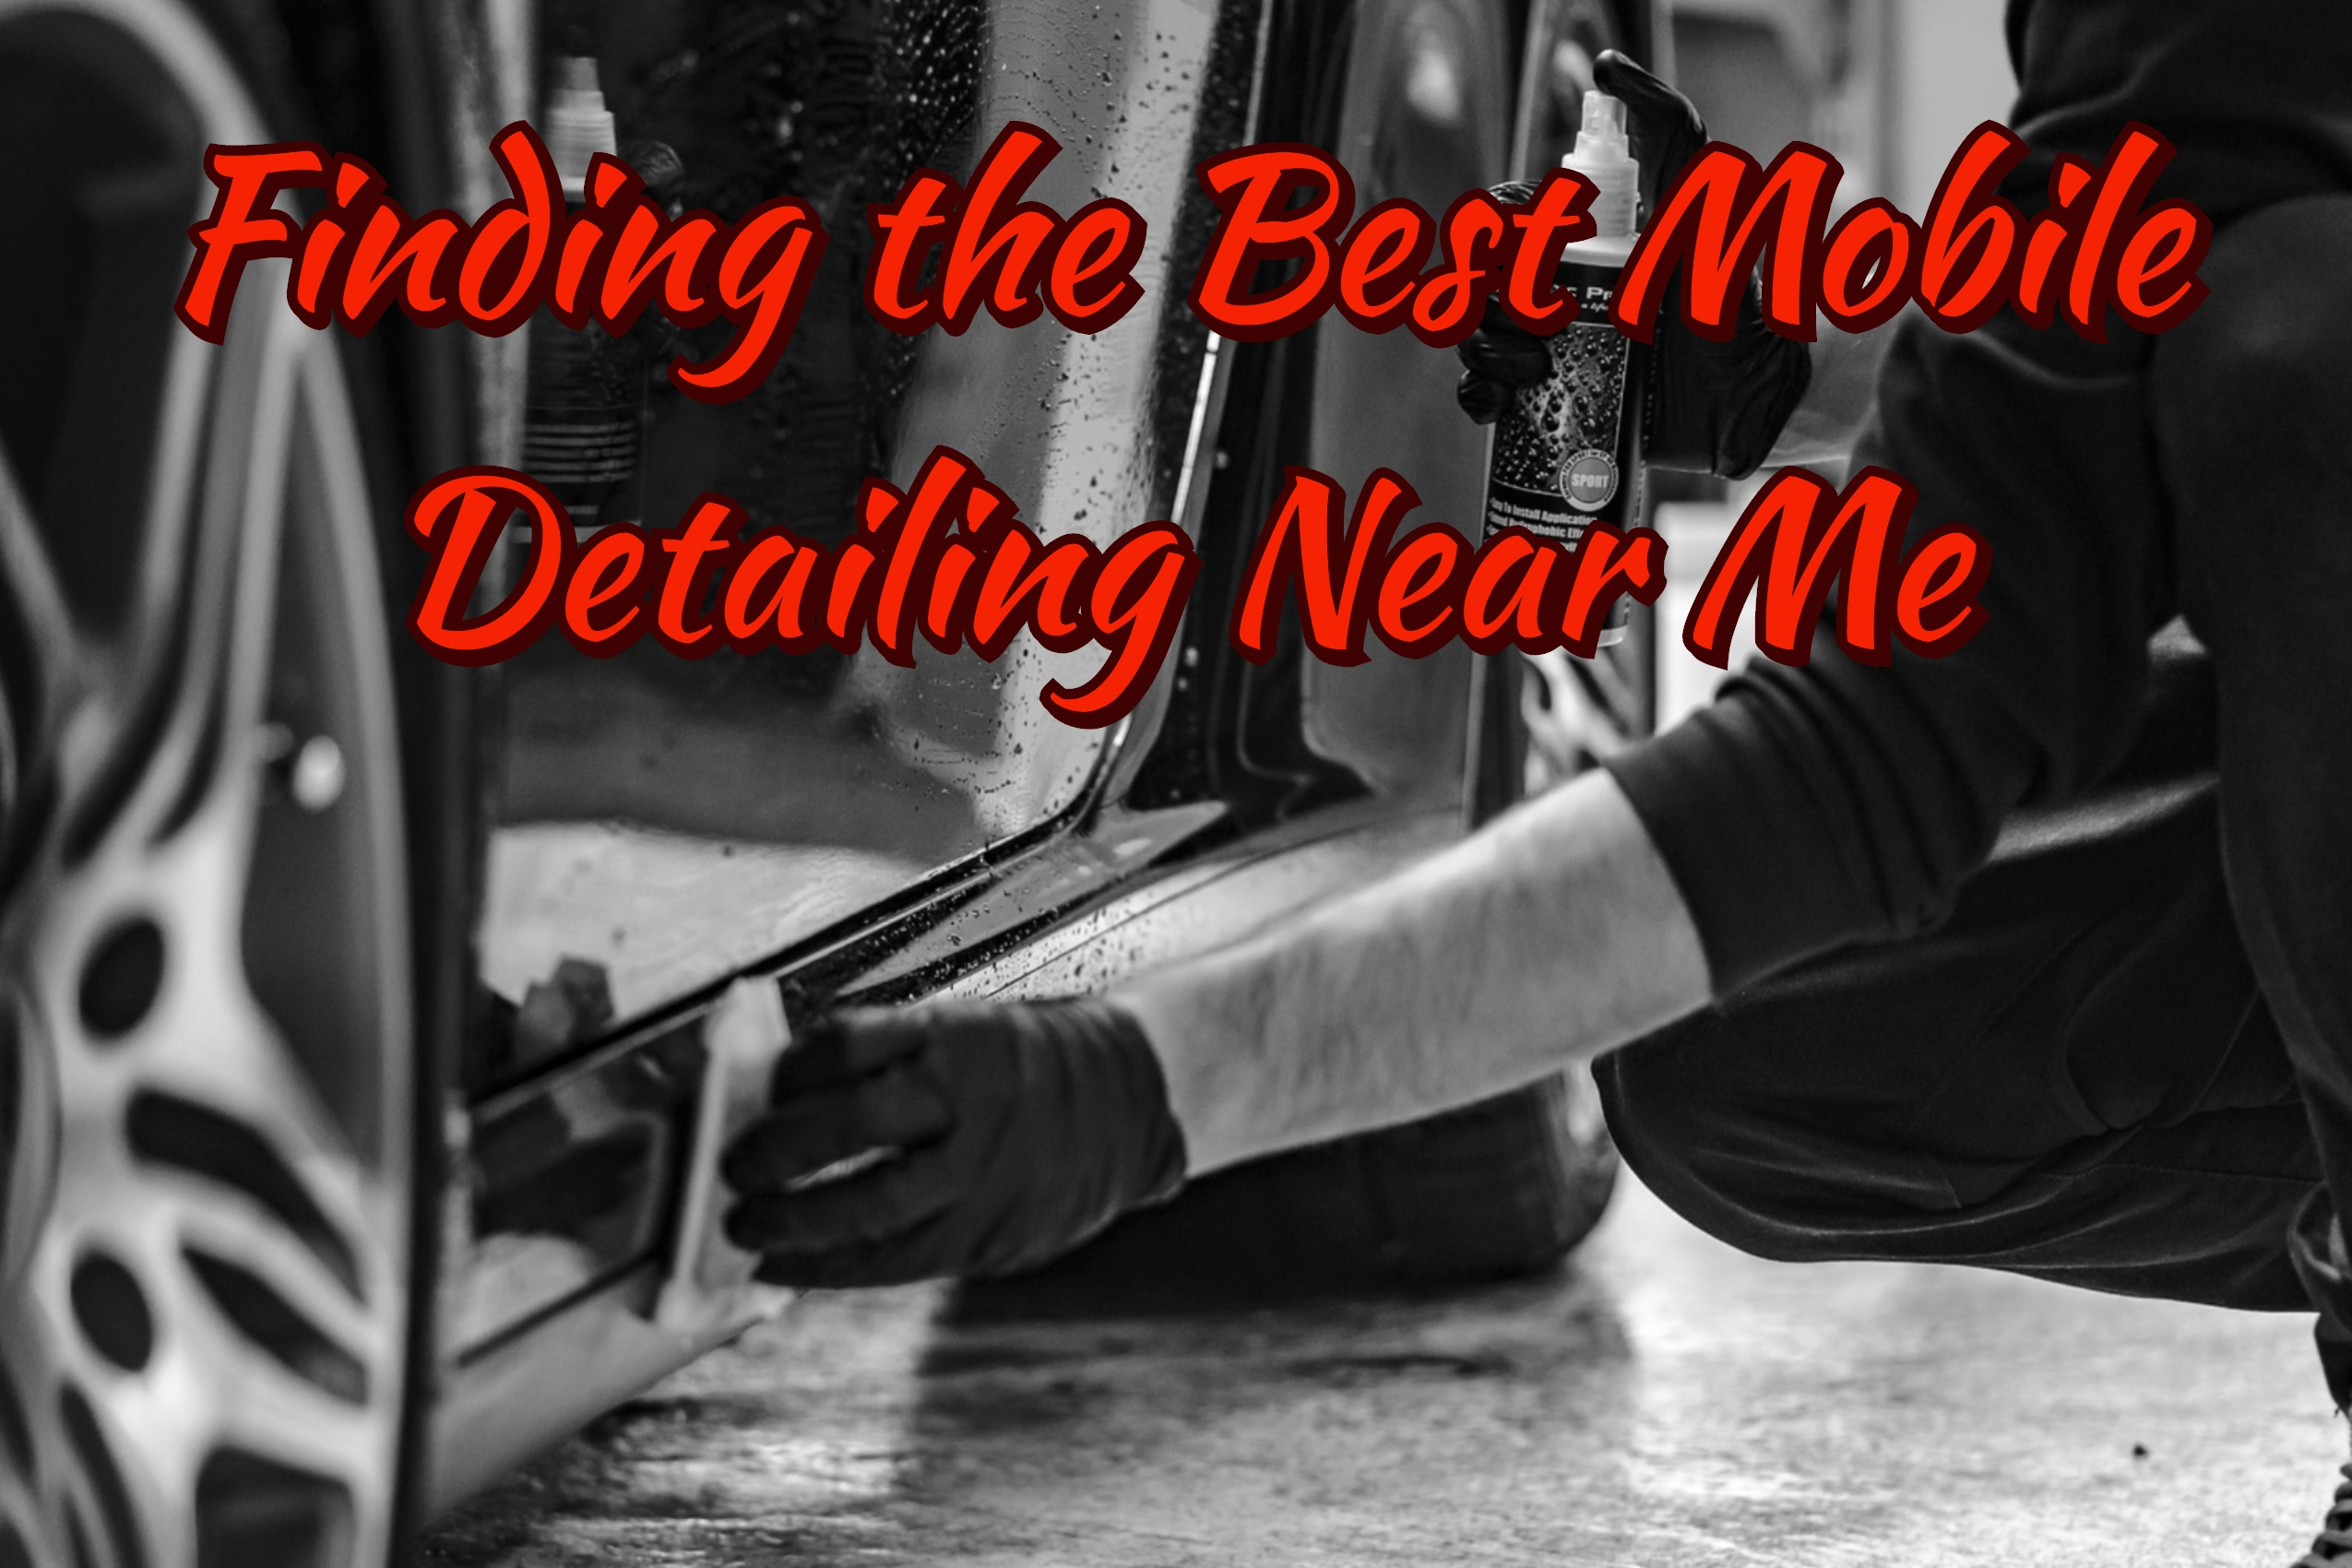 Finding the Best Mobile Detailing Near Me